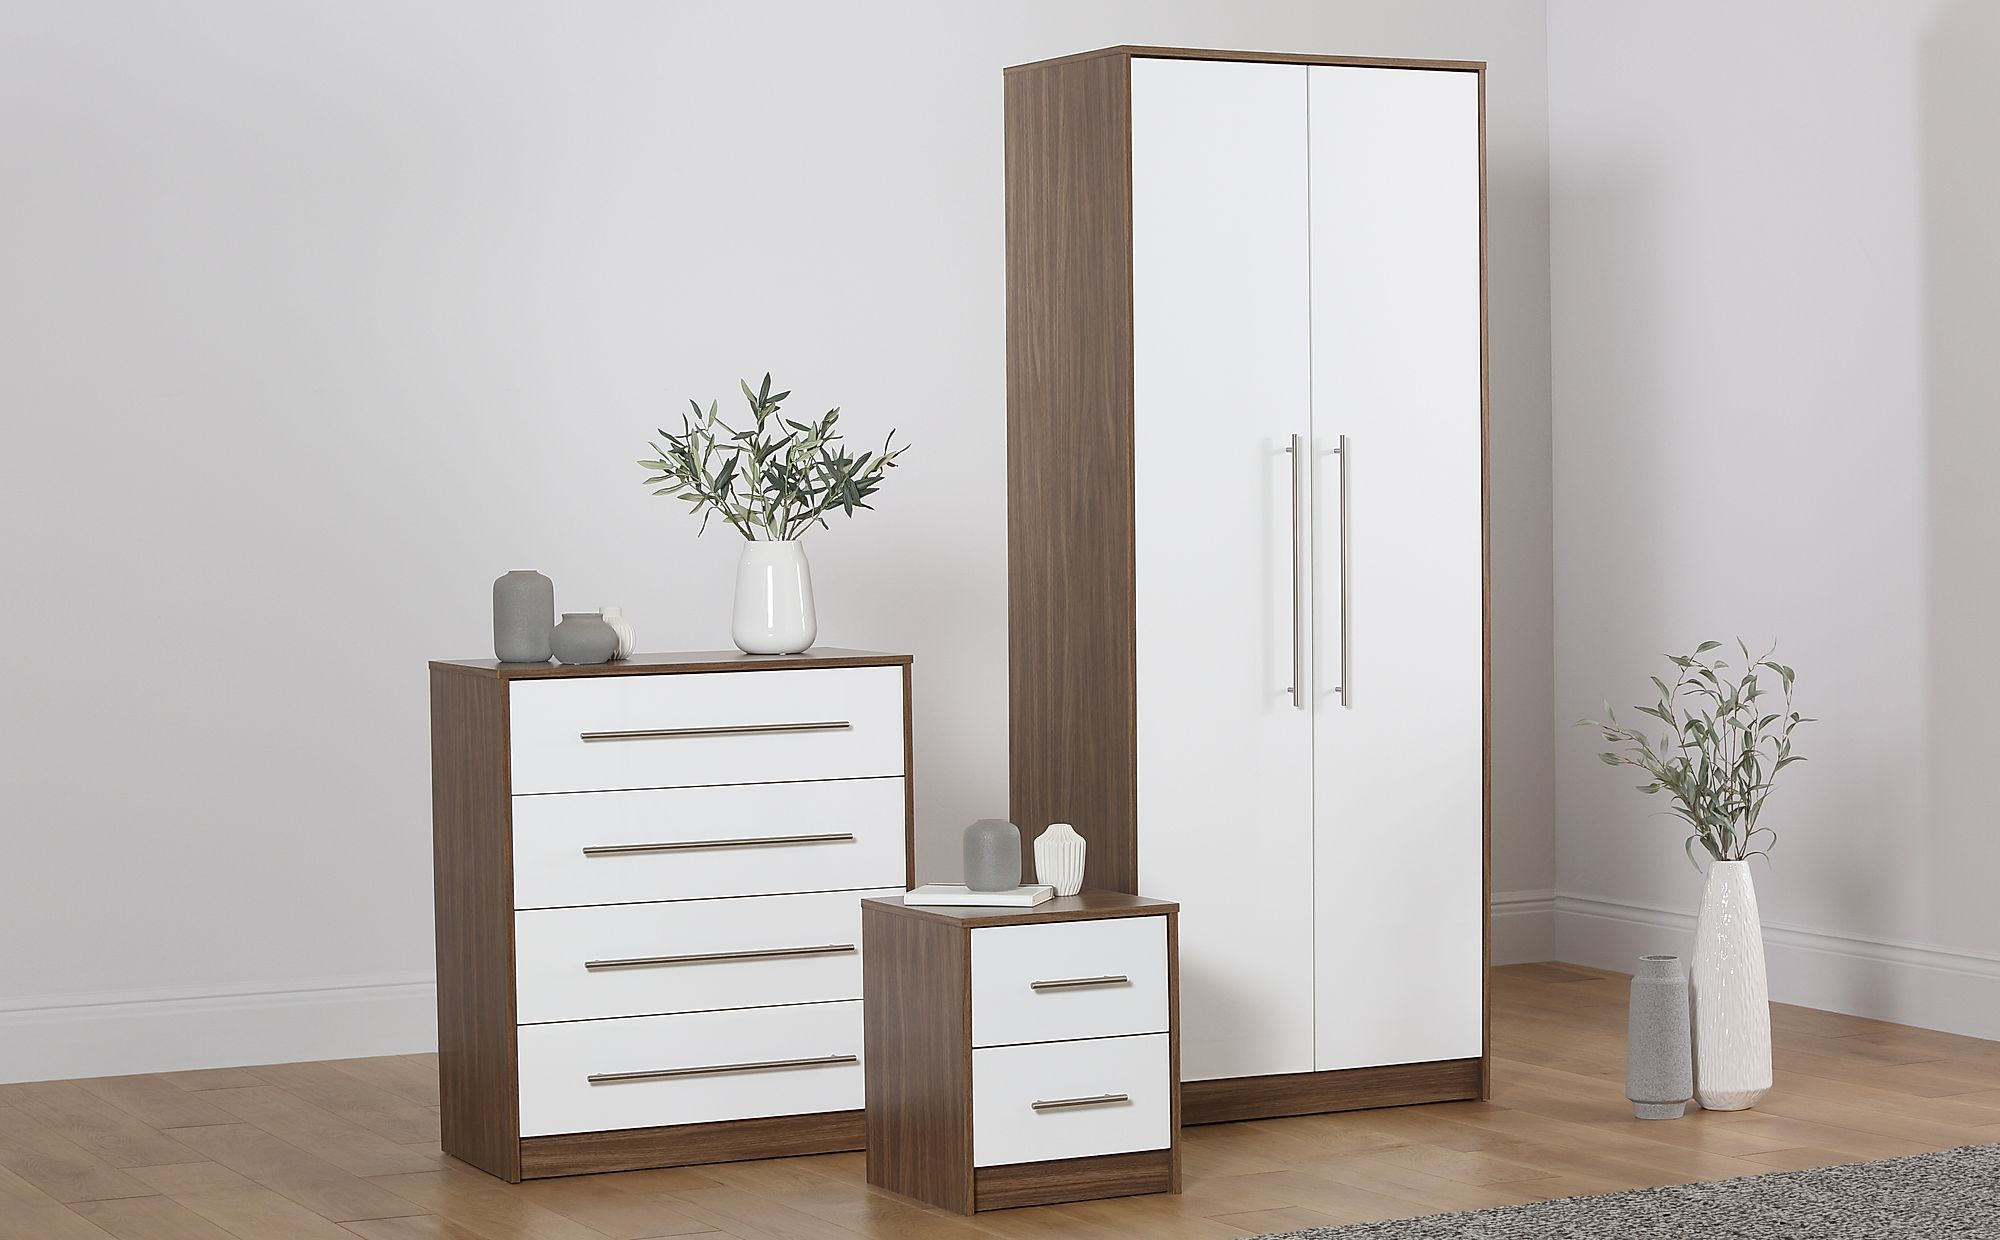 Bloomsbury Walnut White High Gloss 3 Piece 2 Door Wardrobe Bedroom Furniture Set Only